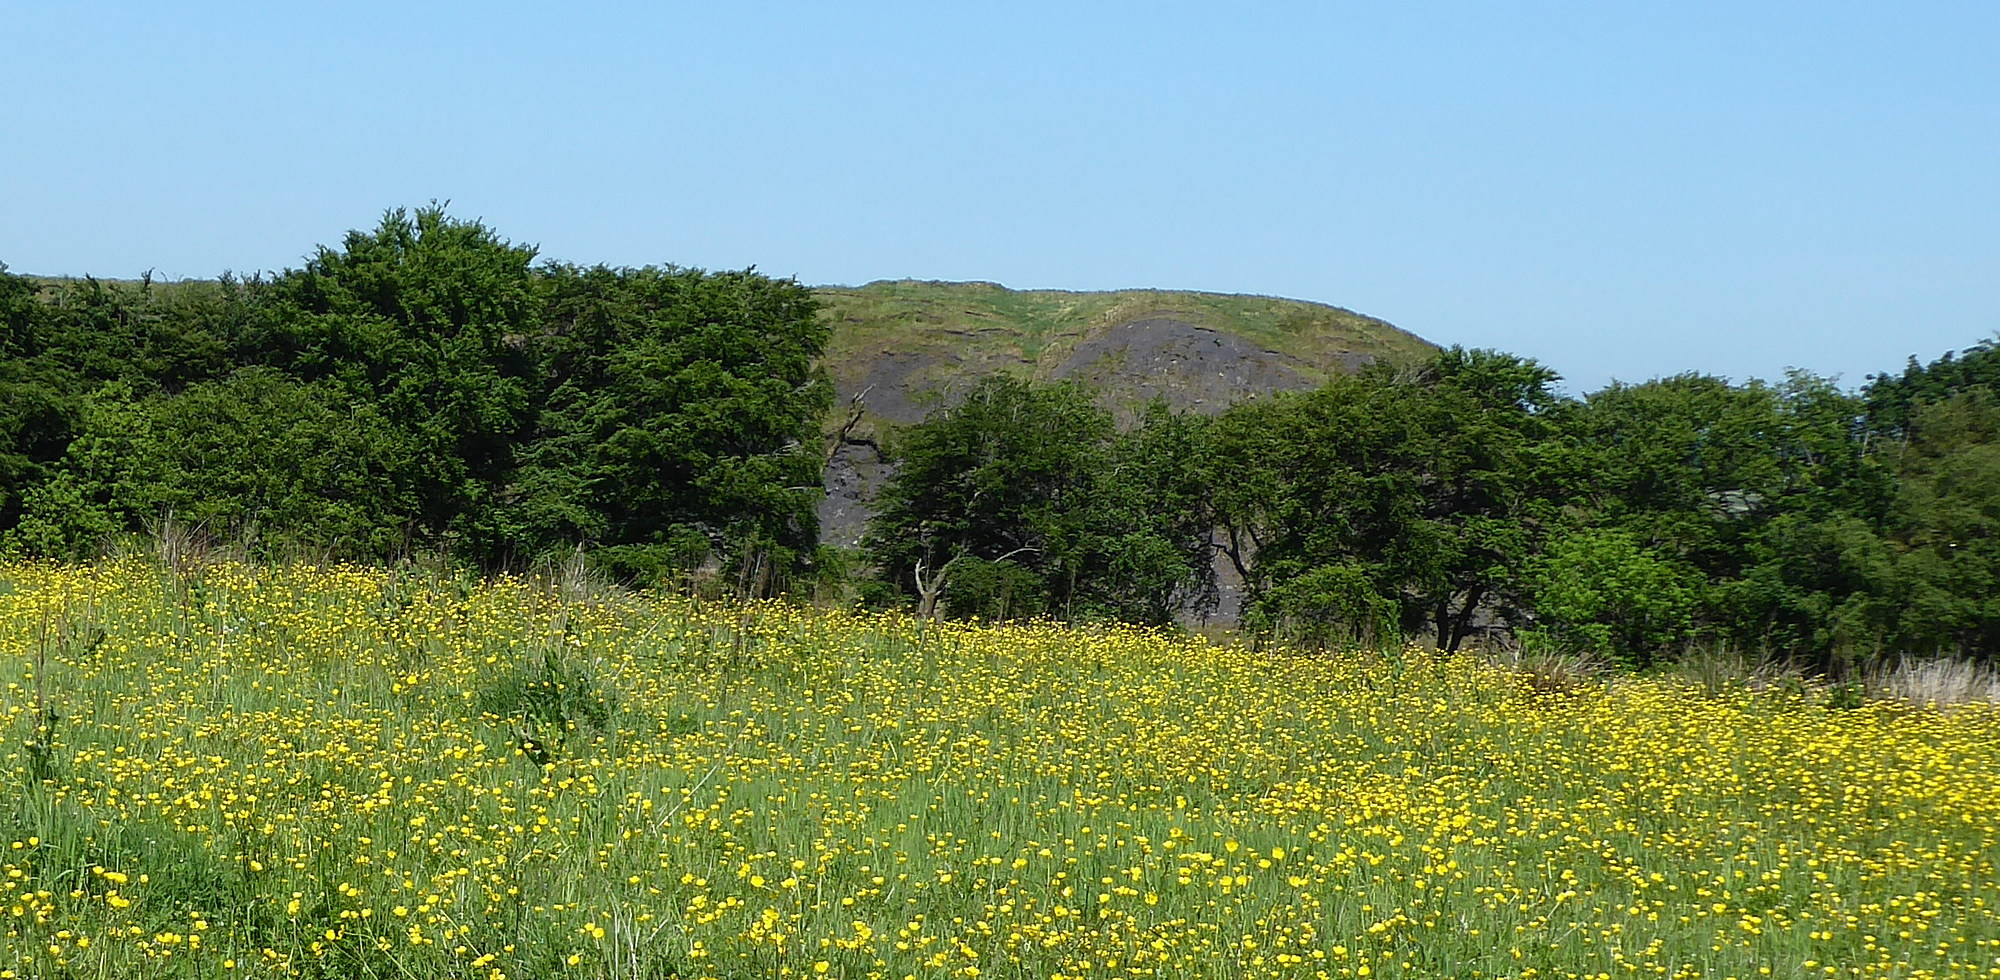 View of buttercup field with Bellfield Bing in the background (taken from Bellfield Road). 5th June 2018.